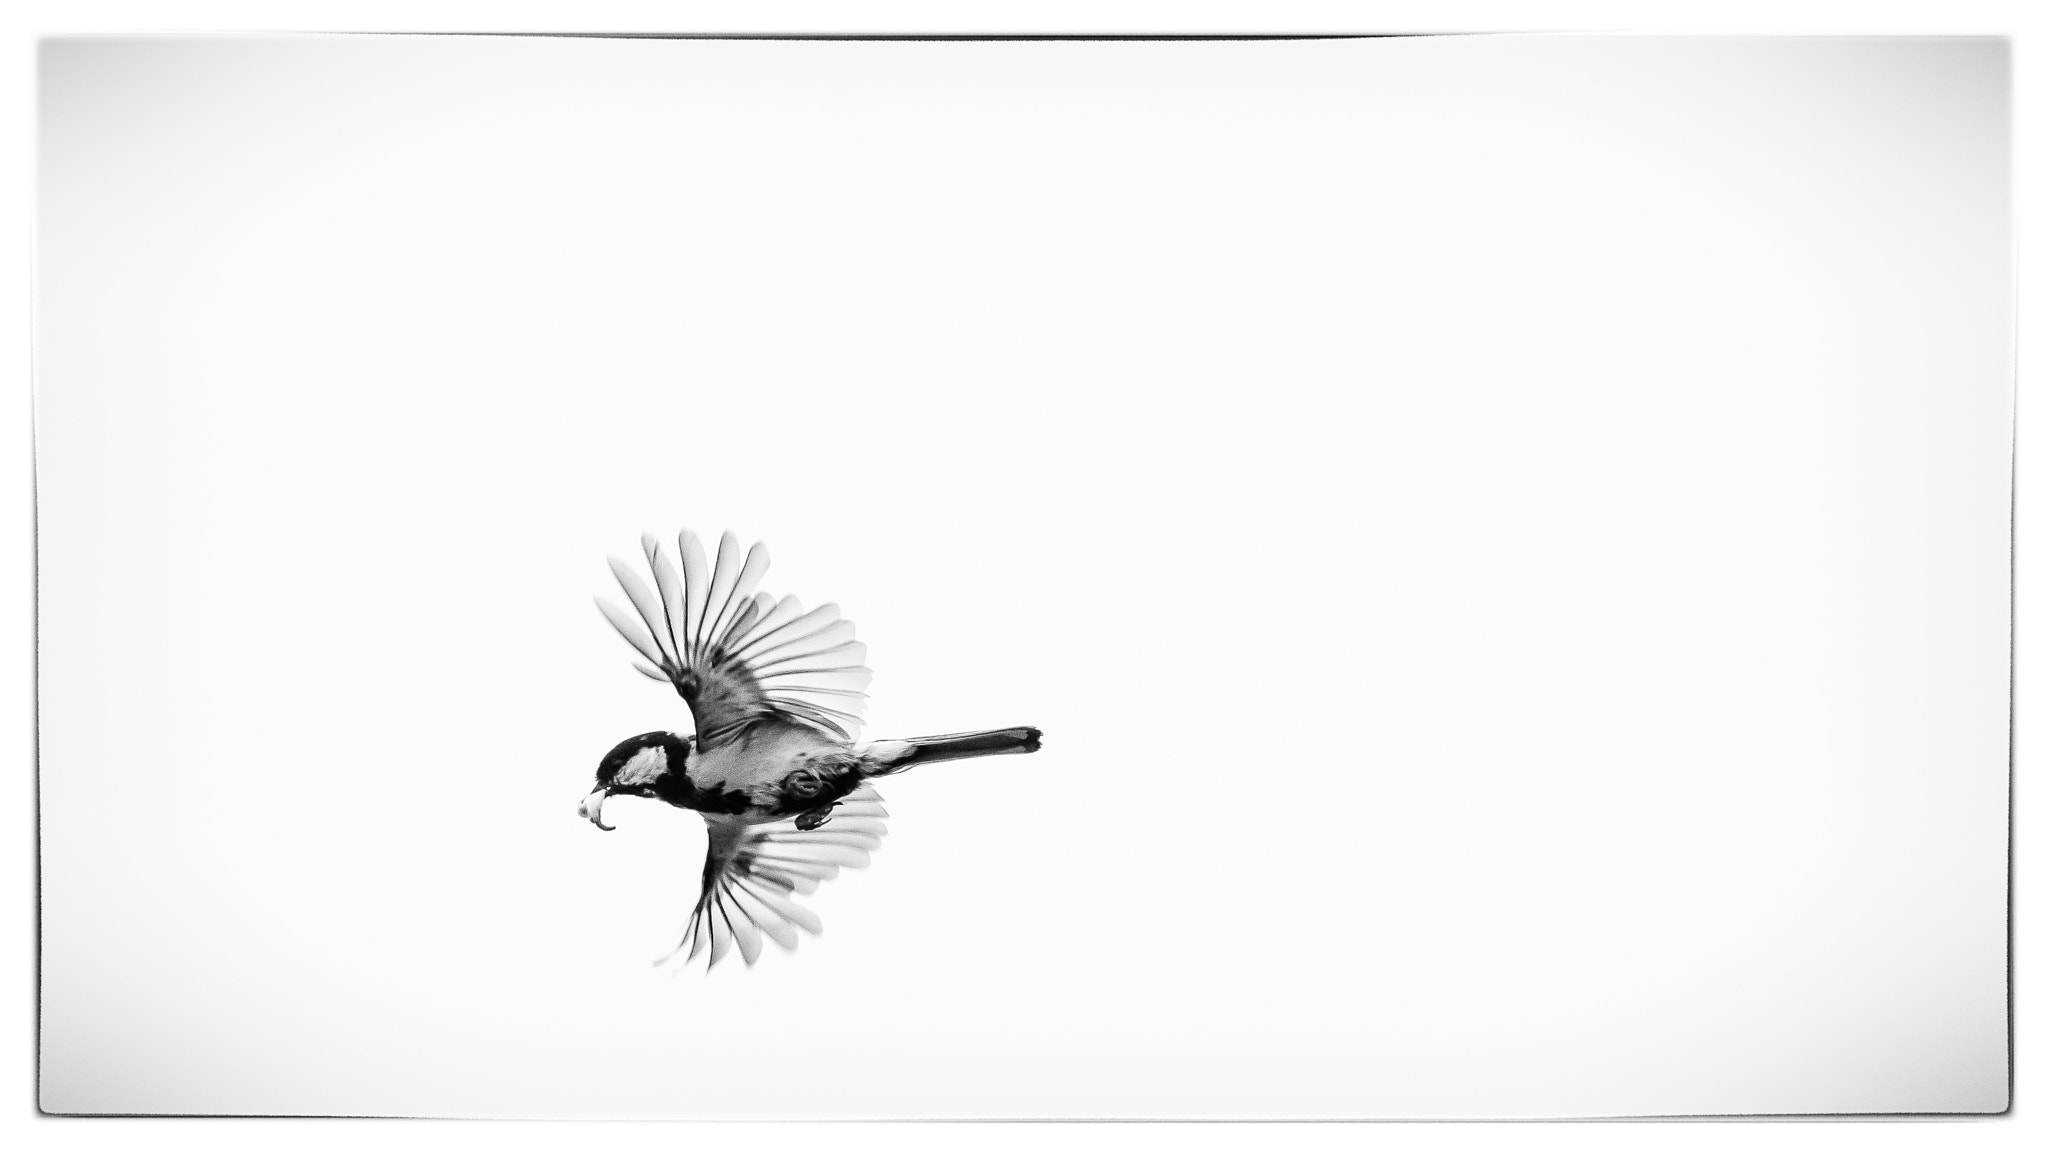 Photograph Bird flying. by Kolbein Svensson on 500px